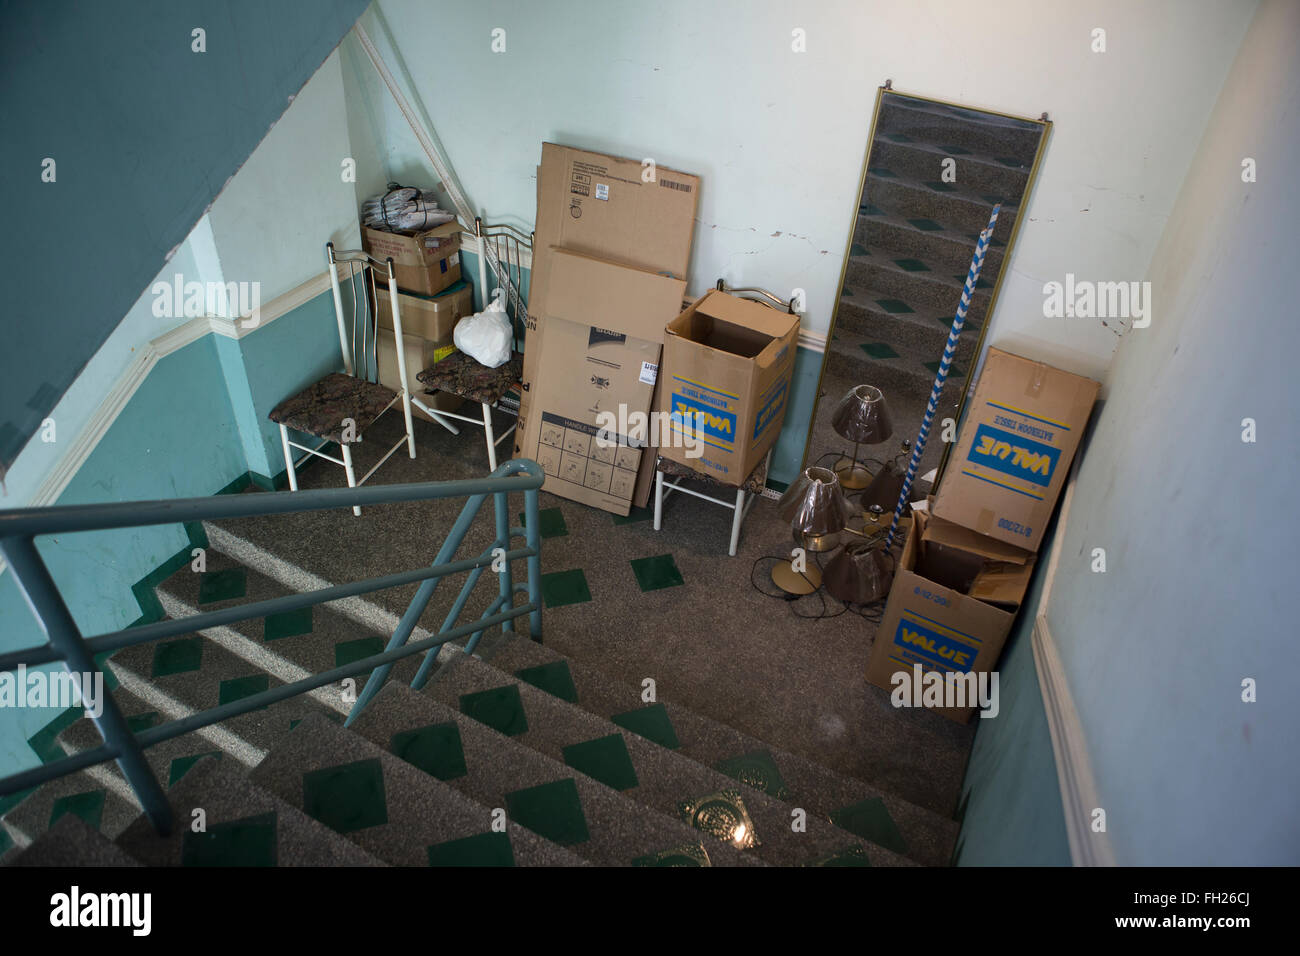 Old furniture and clutter causing an obstruction to the fire exit of a budget Hotel in the Philippines. - Stock Image